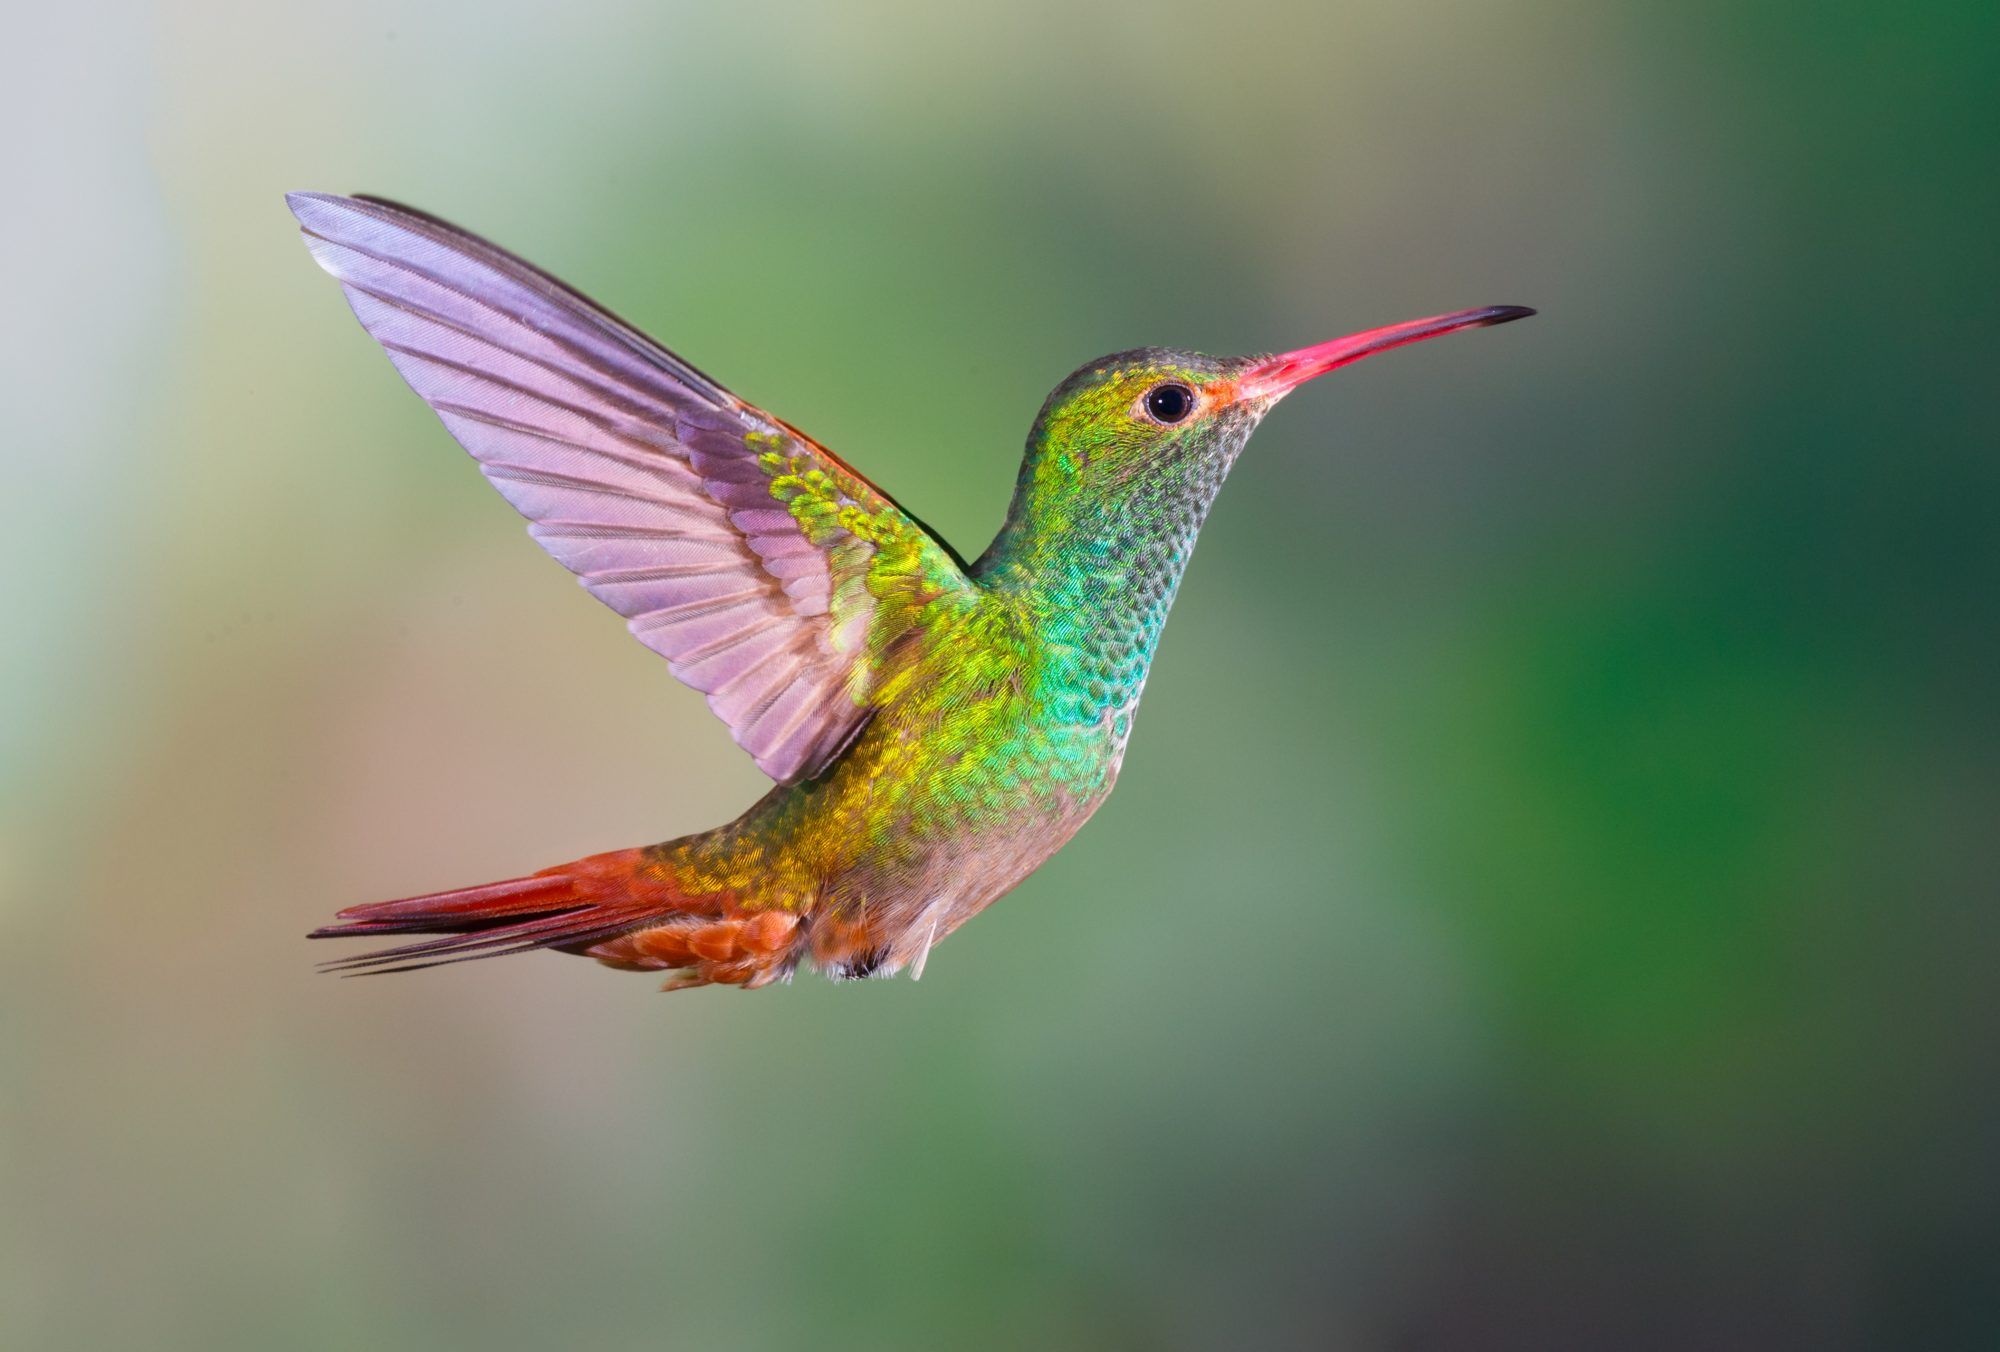 Hummingbird Flying in Air